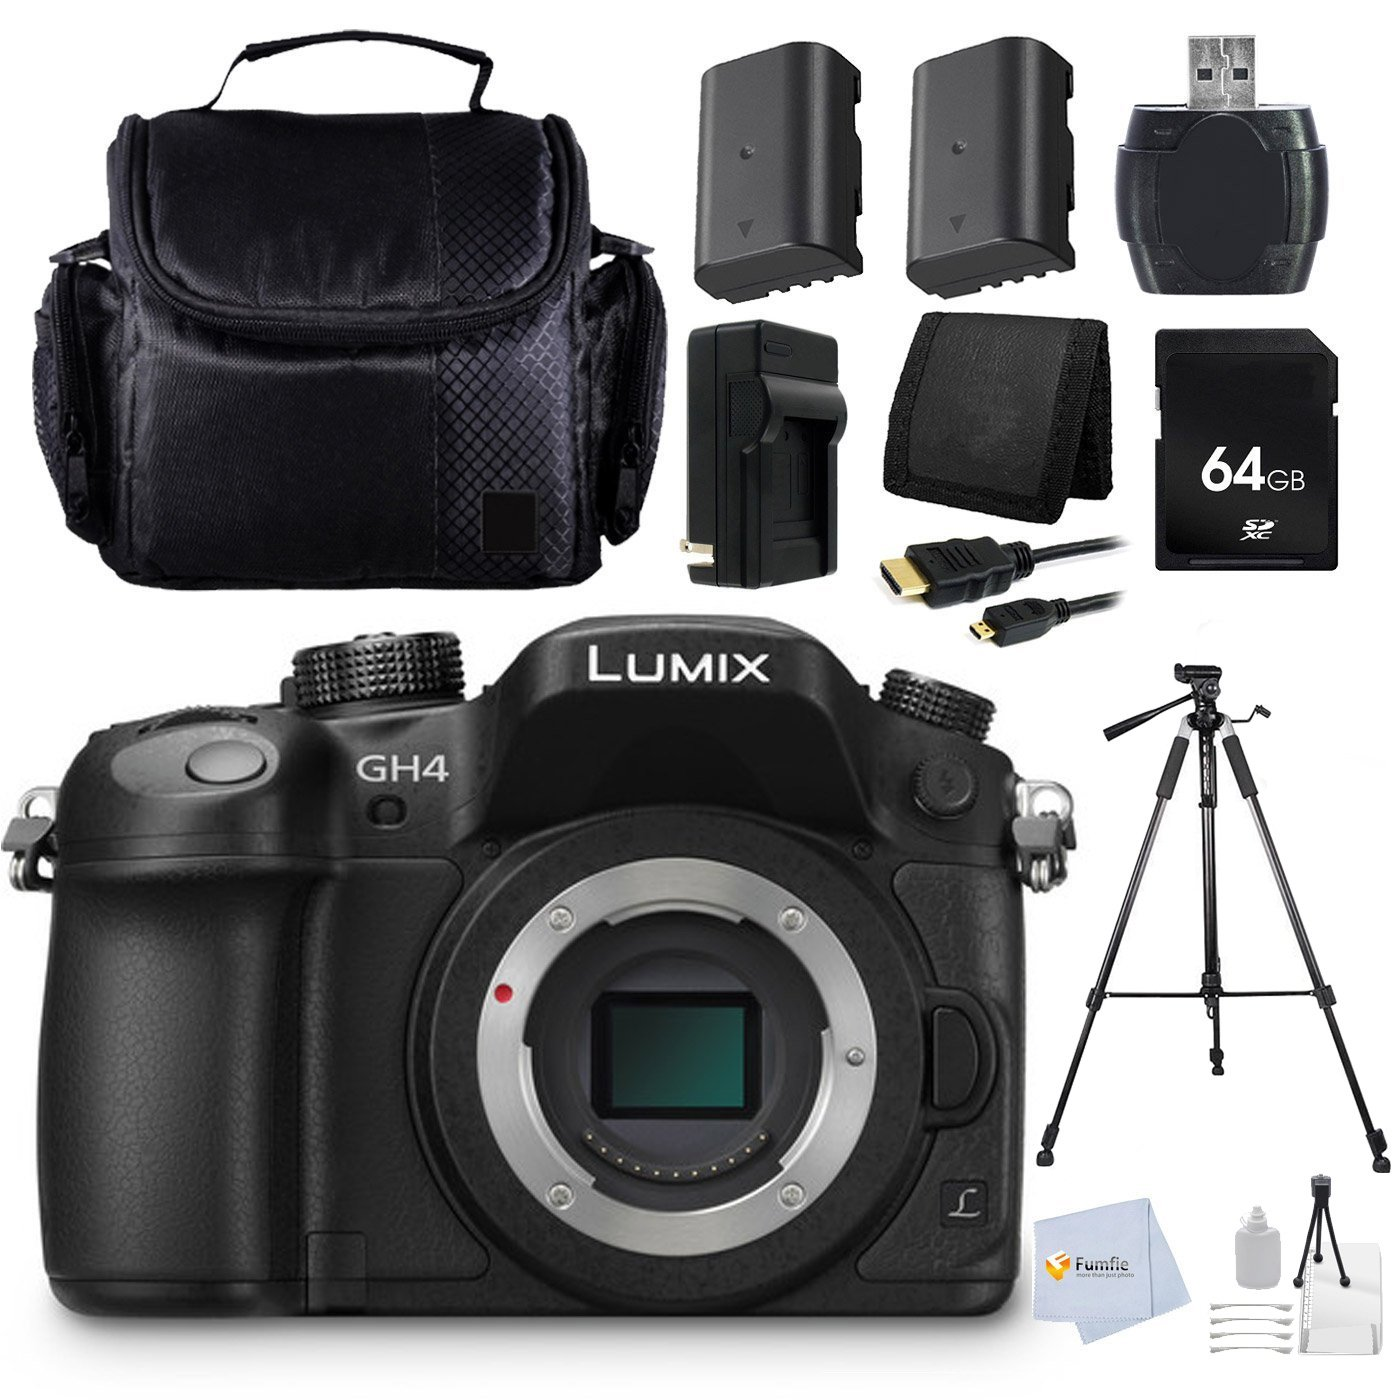 Panasonic LUMIX GH4 DMC-GH4KBODY 16.05MP Digital Single Lens Mirrorless Camera with 4K Cinematic Video (Body Only) + 64GB Memory Card + 72'' Tripod + Memory Card Reader + 2 Batteries + Charger & more by Fumfie